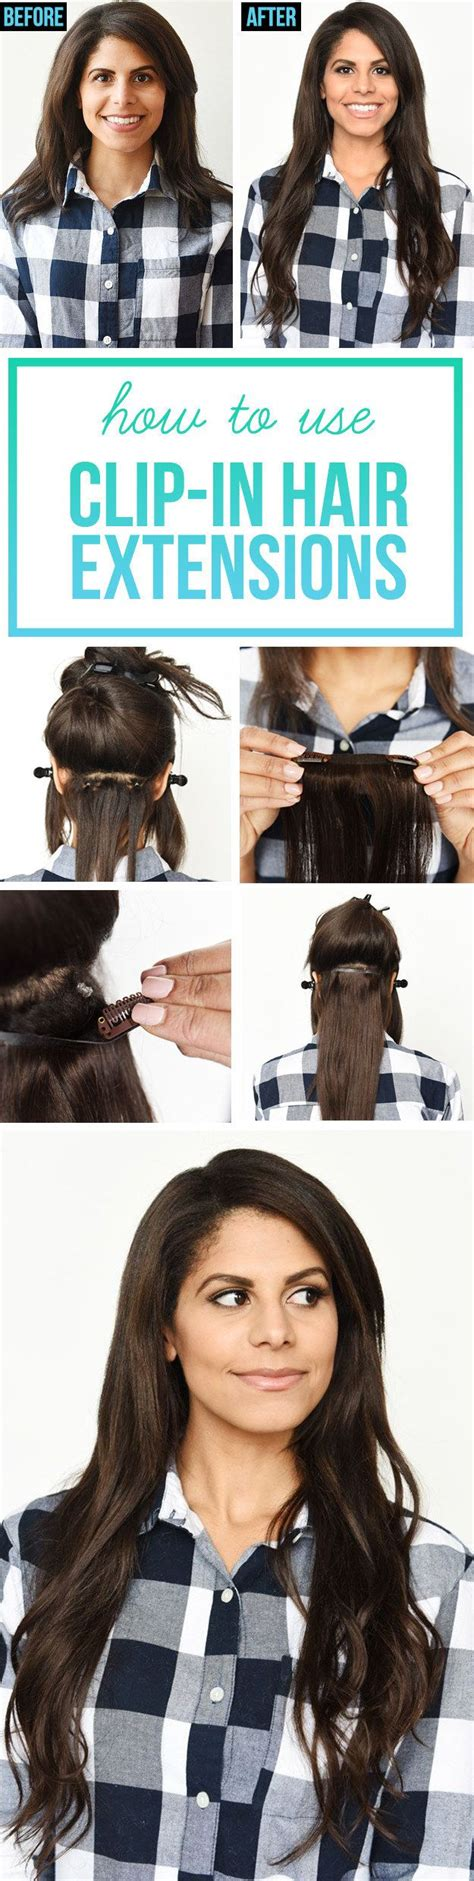 the hair extensions expo this guide will show you exactly how to use clip in hair